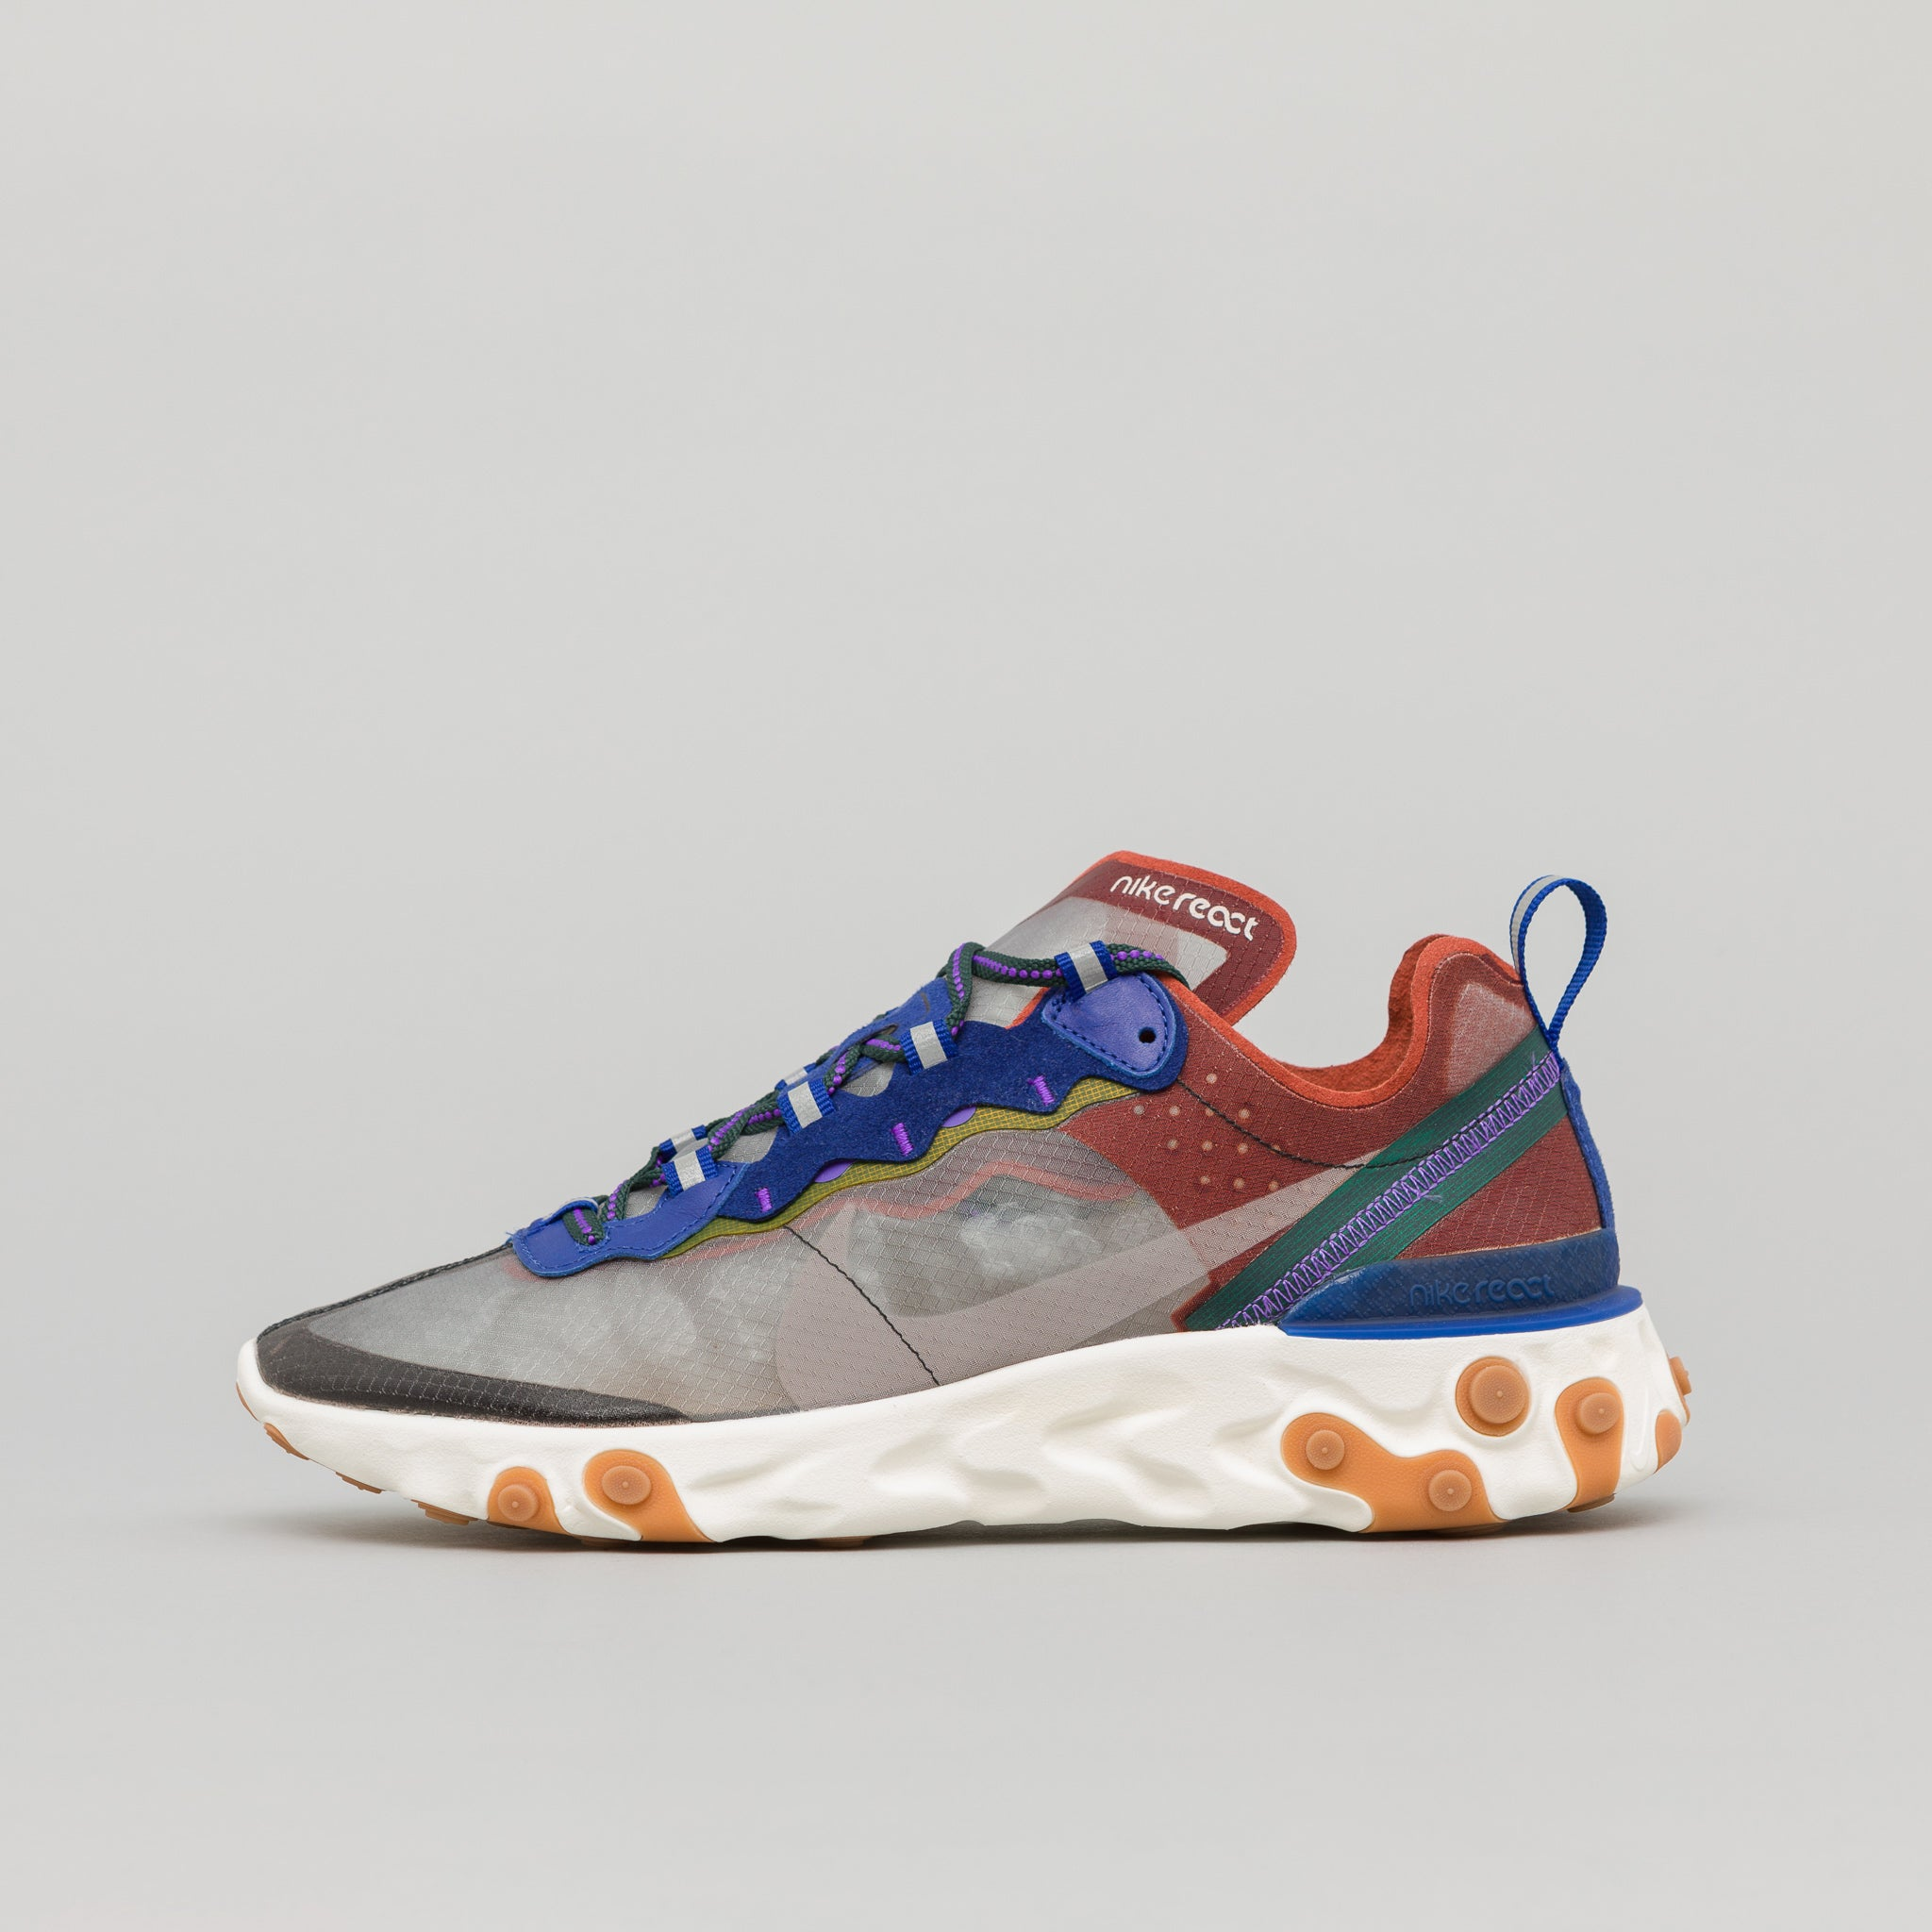 premium selection 61f0a 1684f React Element 87 in Dusty Peach Grey. Nike